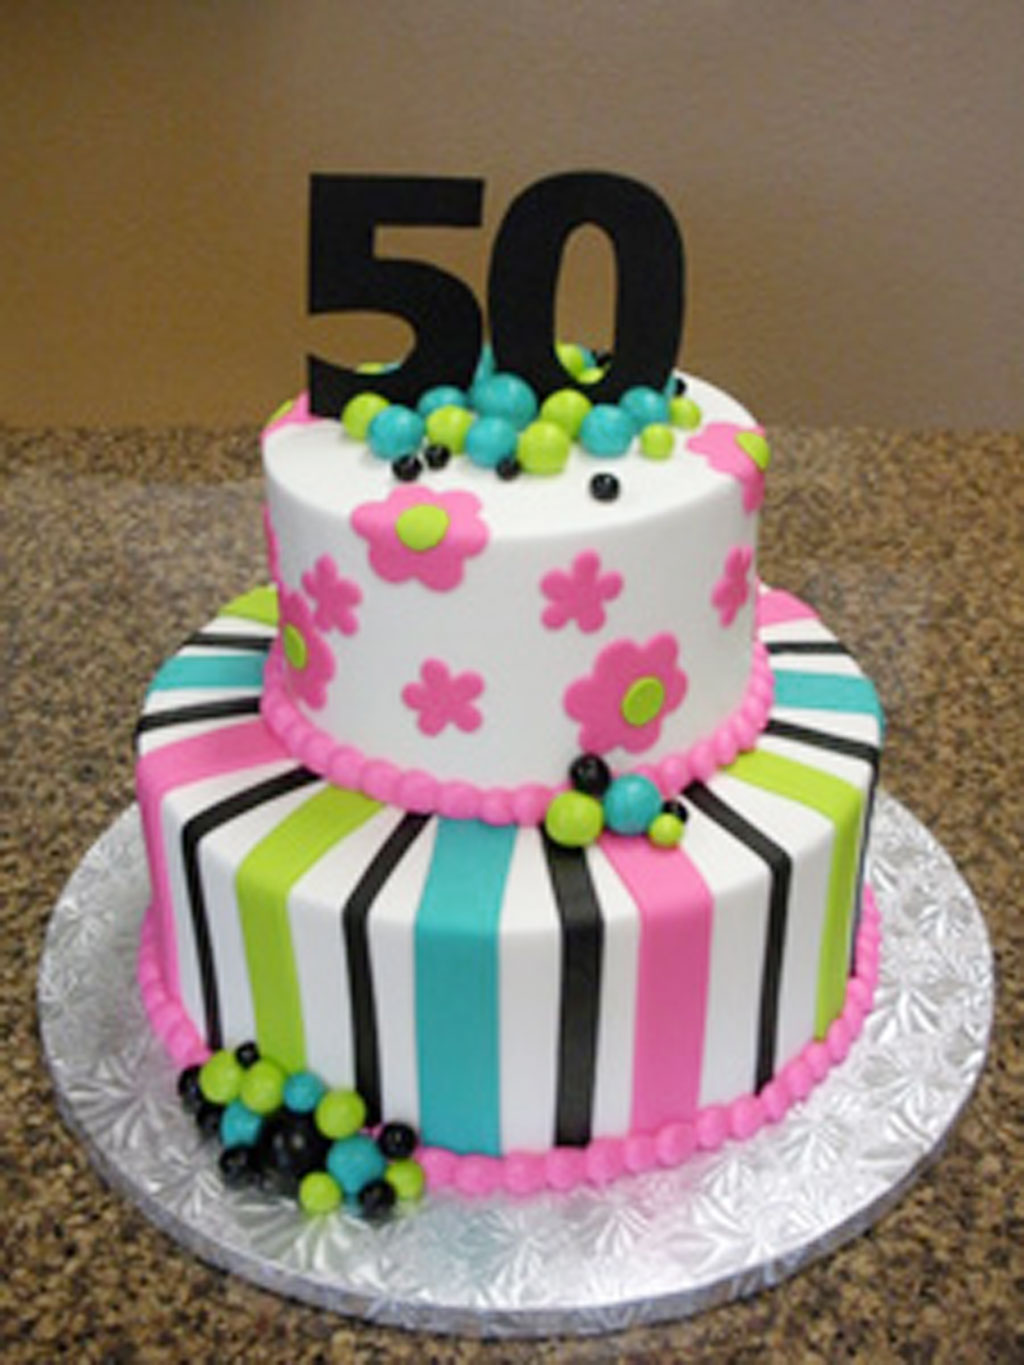 Cake Designs Of Birthday : 50th Birthday Cakes Pictures For Women Birthday Cake ...